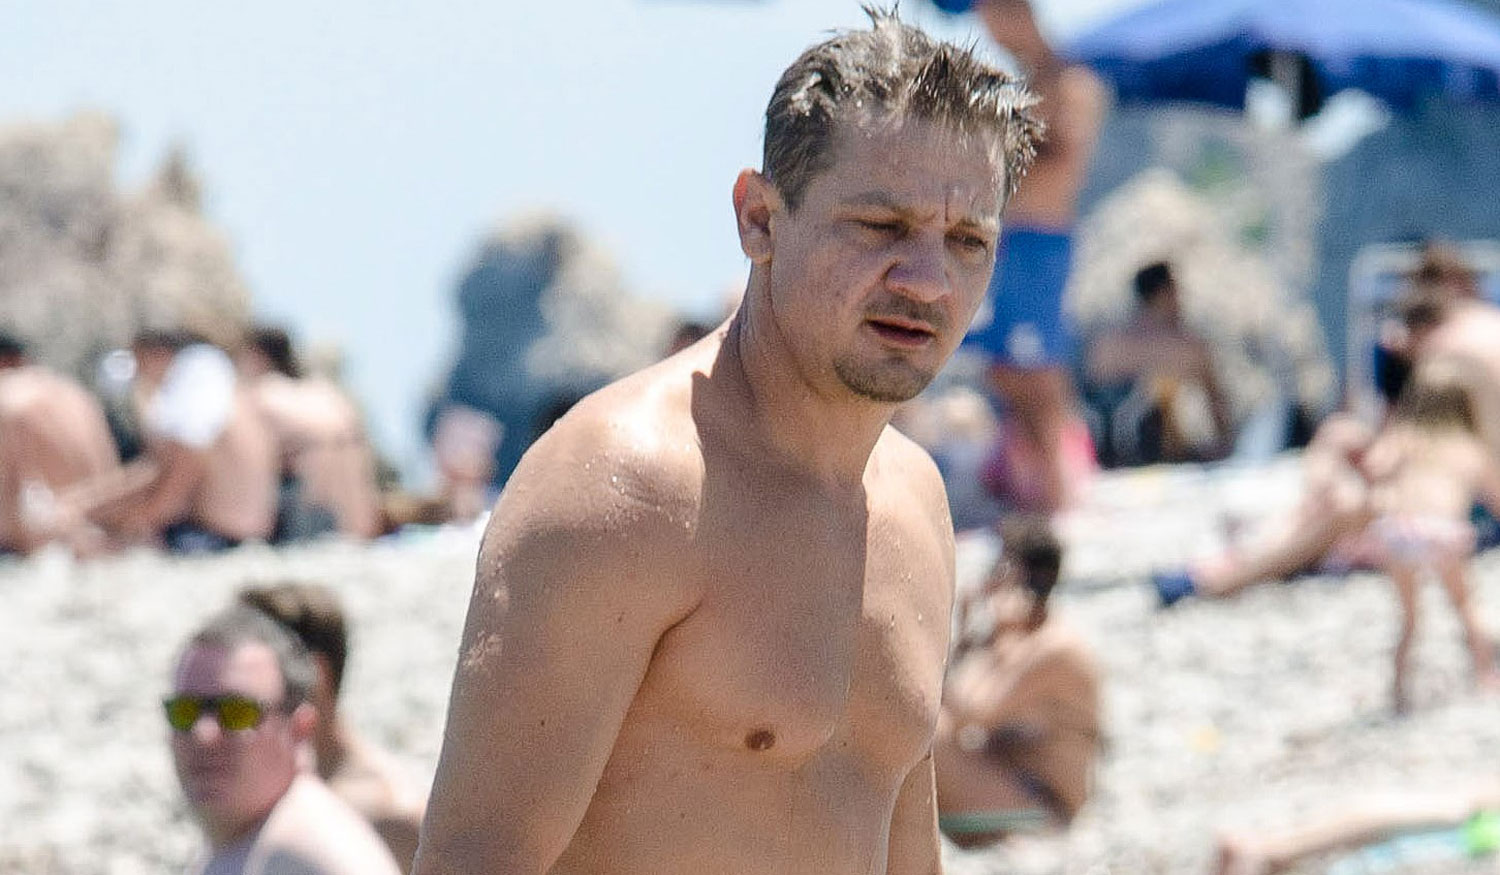 jeremy renner goes shirtless in italy suffers injured